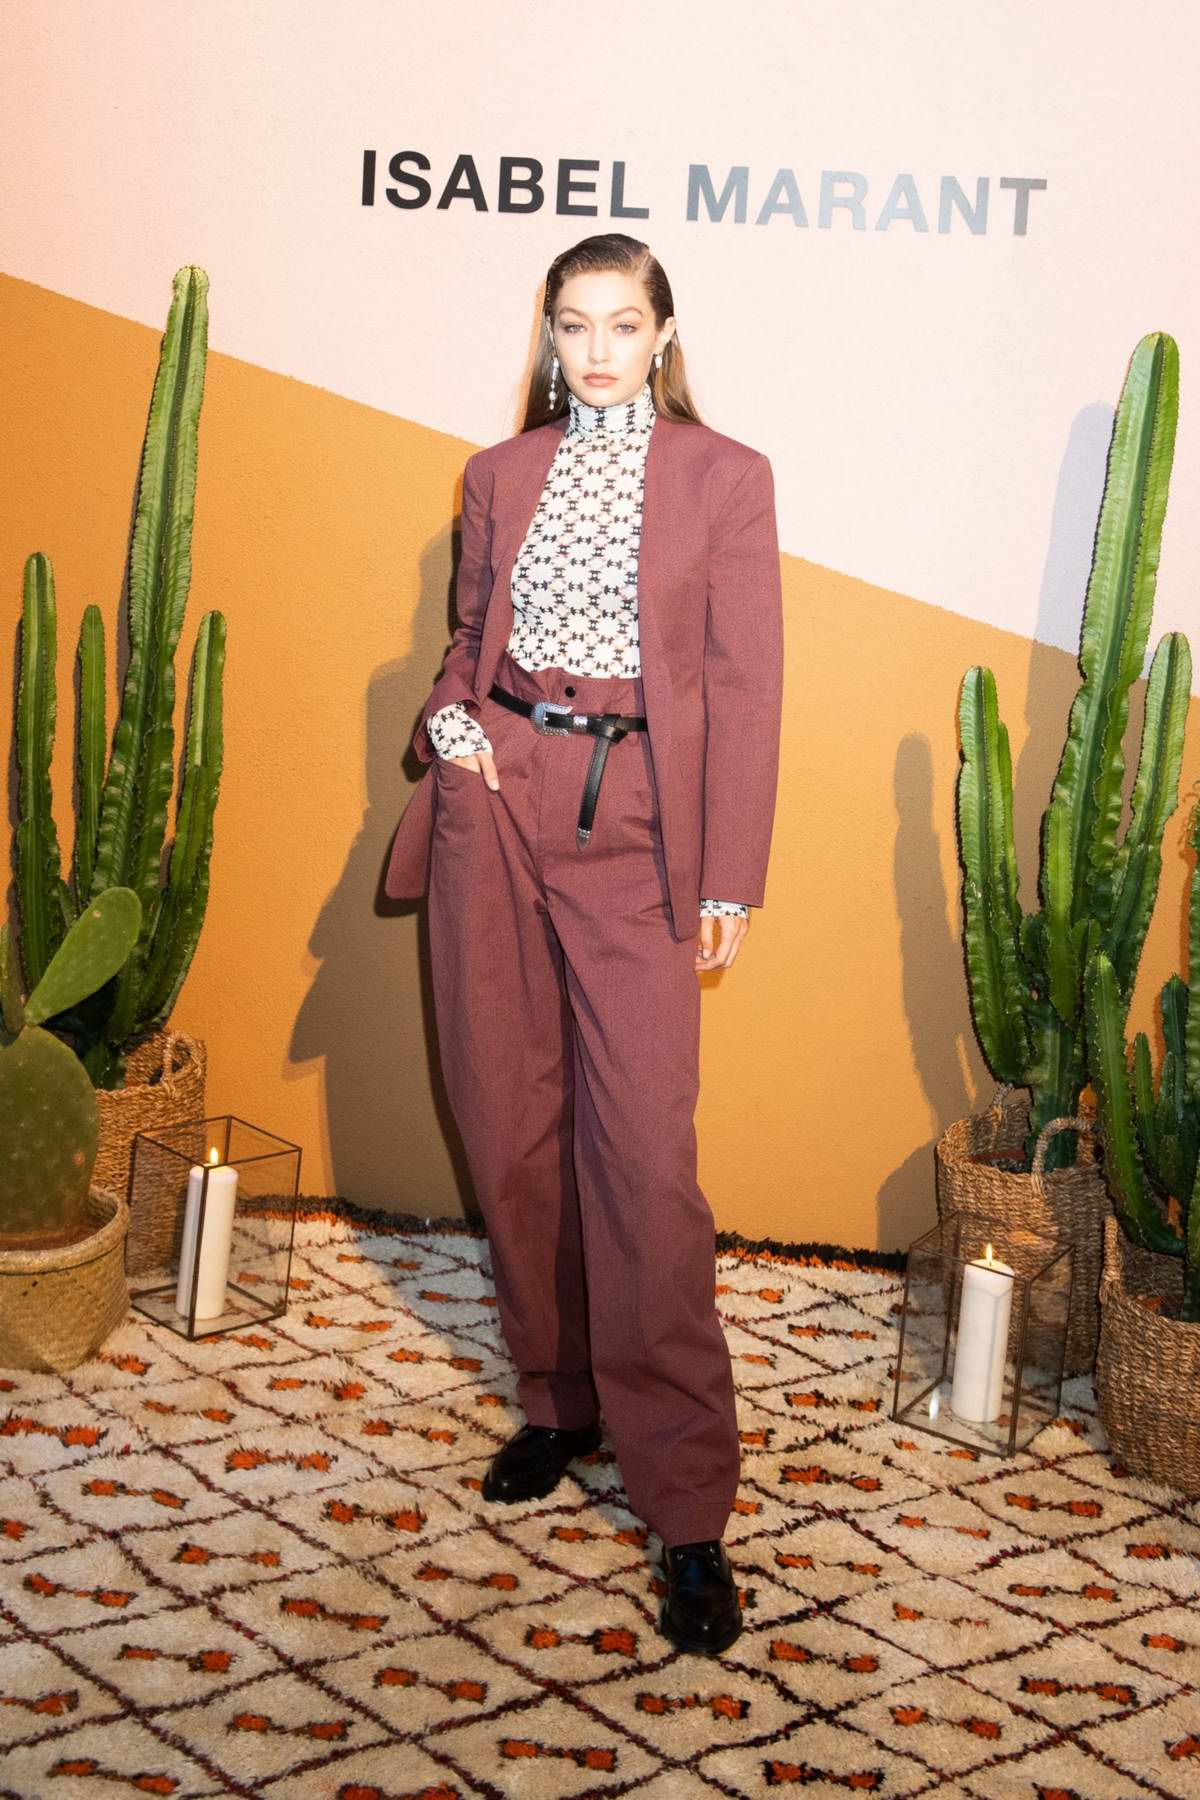 Gigi Hadid attends the Isabel Marant Party during Milan Men's Fashion Week Spring/Summer 2020 in Milan, Italy